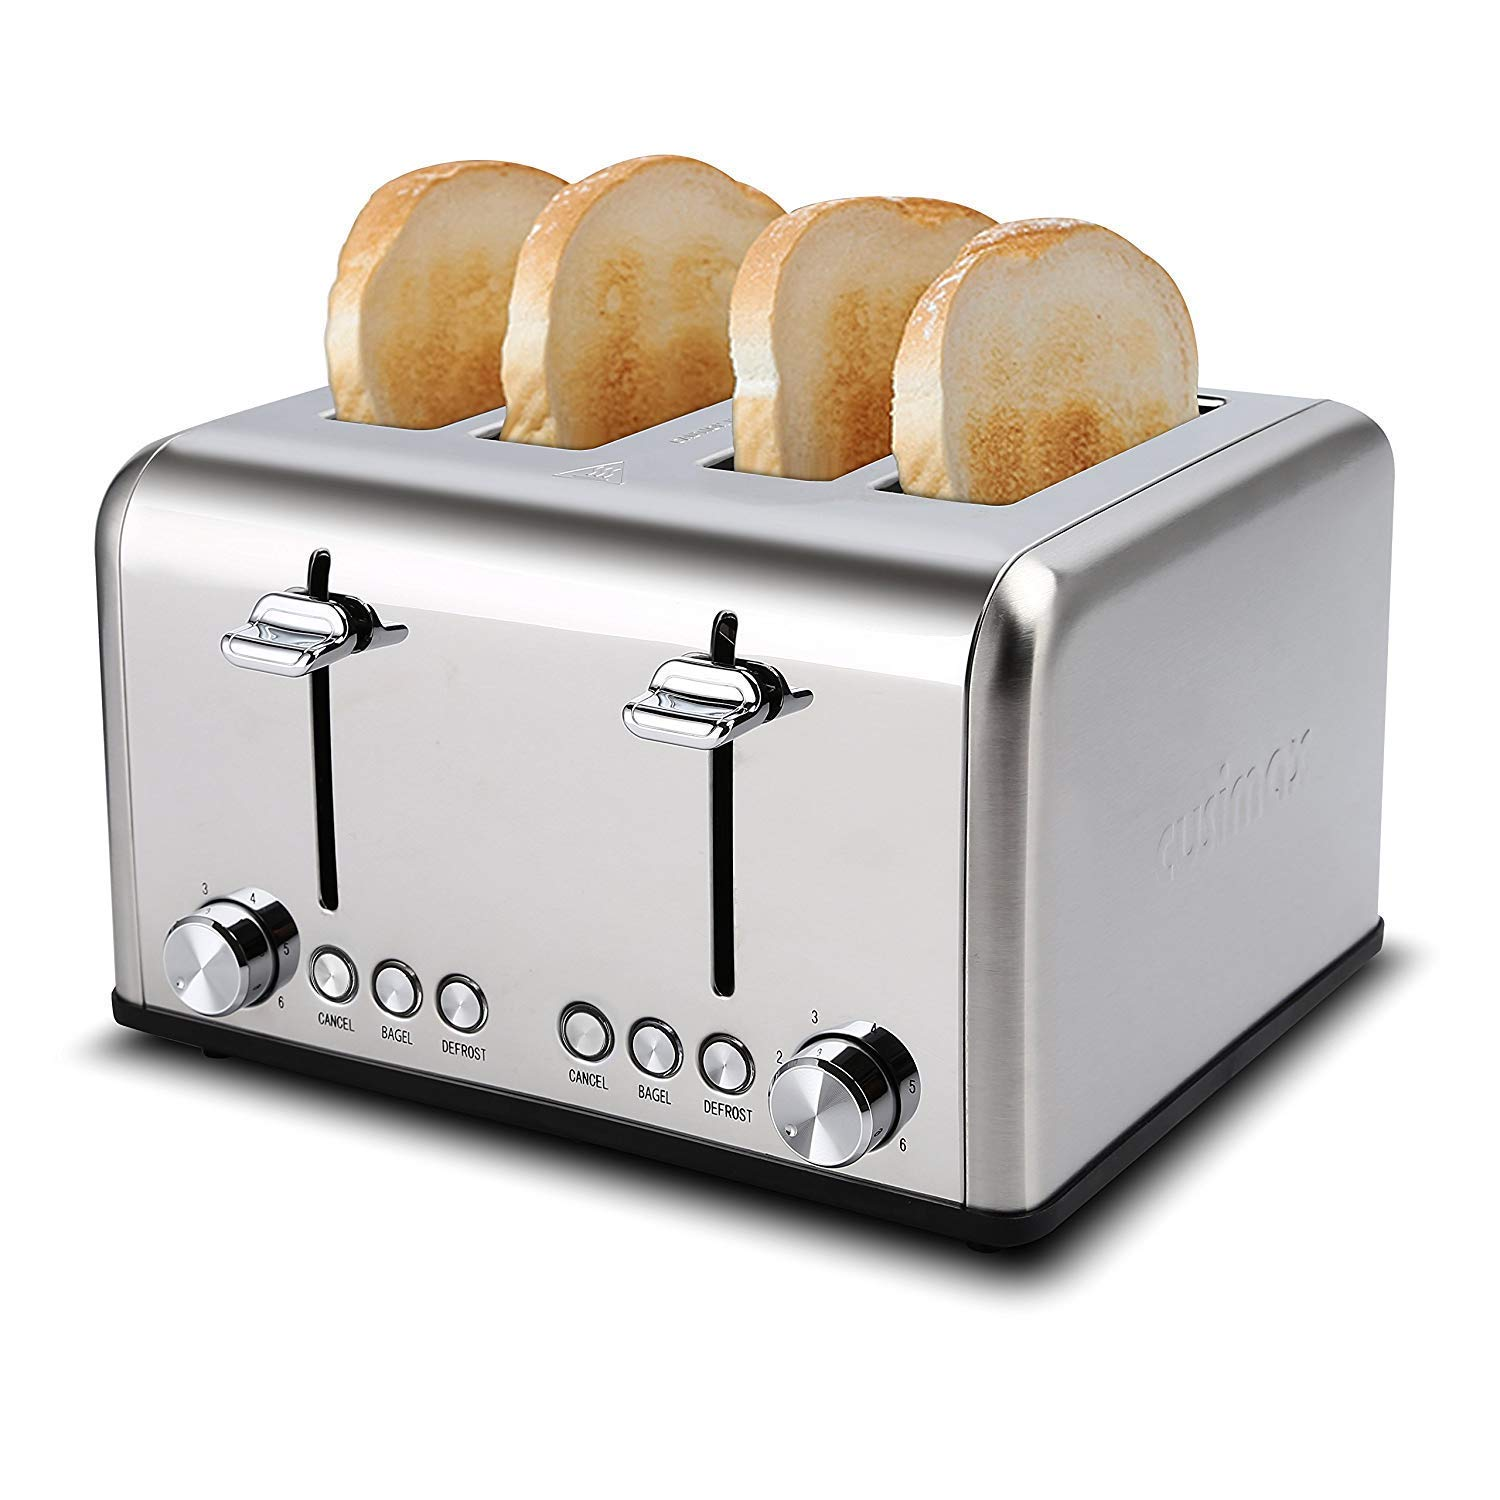 Cusimax 4 Slice Toaster, Extra Wide Slot with BAGEL/DEFROST/CANCEL Function, Bagel Toaster, Stainless Steel Four Slice Toaster 6 Shade Settings